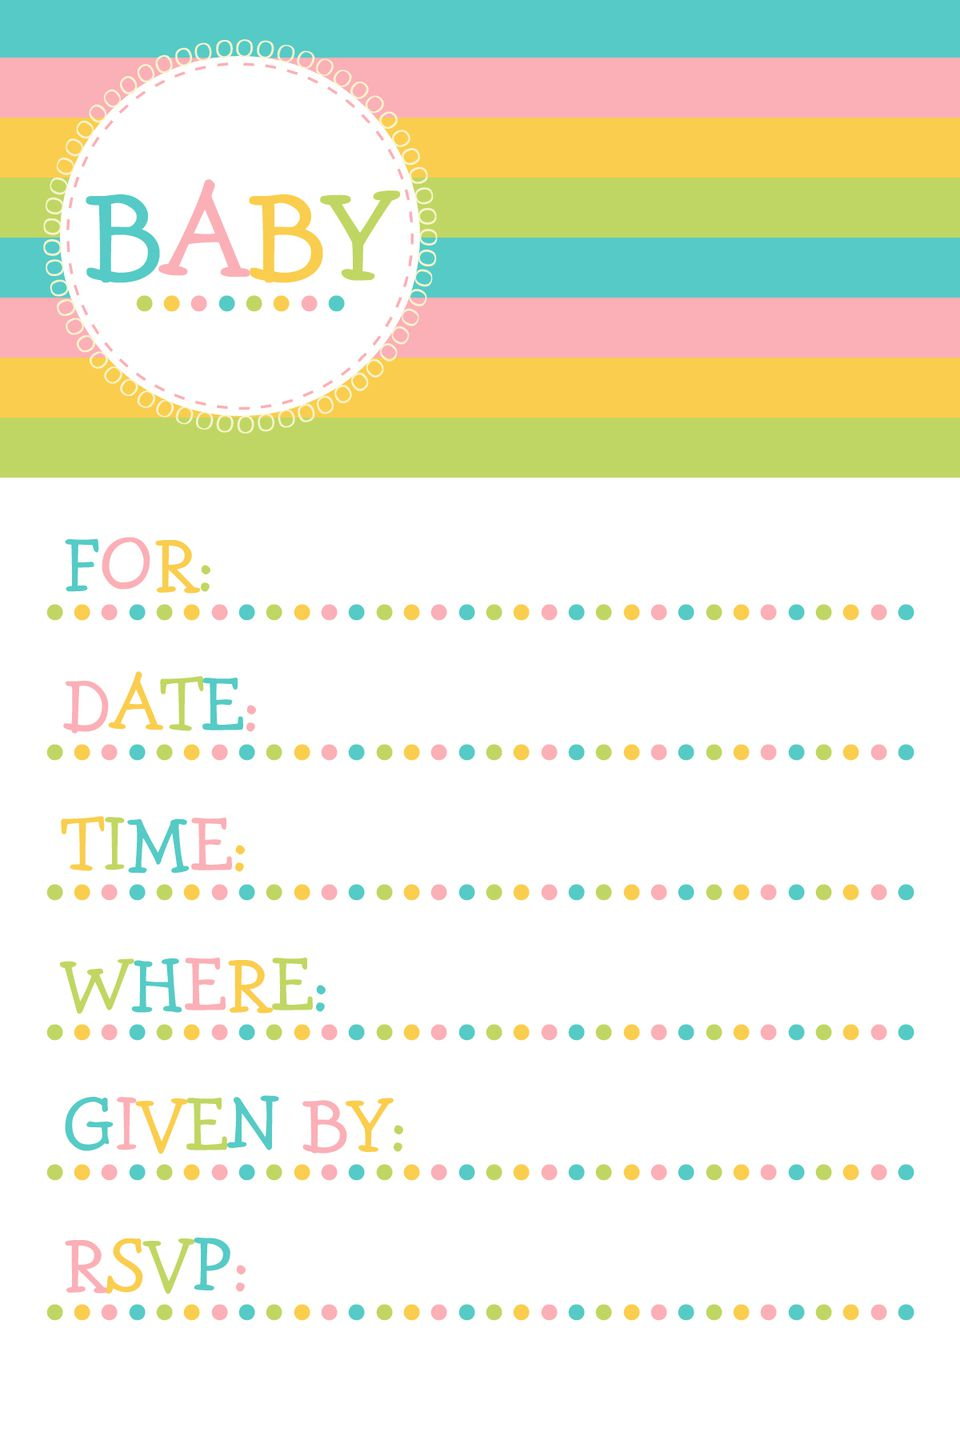 Full Size of Baby Shower:sturdy Baby Shower Invitation Template Image Concepts Baby Shower Invitation Template Girl Baby Shower Baby Shower Registry Baby Shower Host Baby Shower Gift Ideas